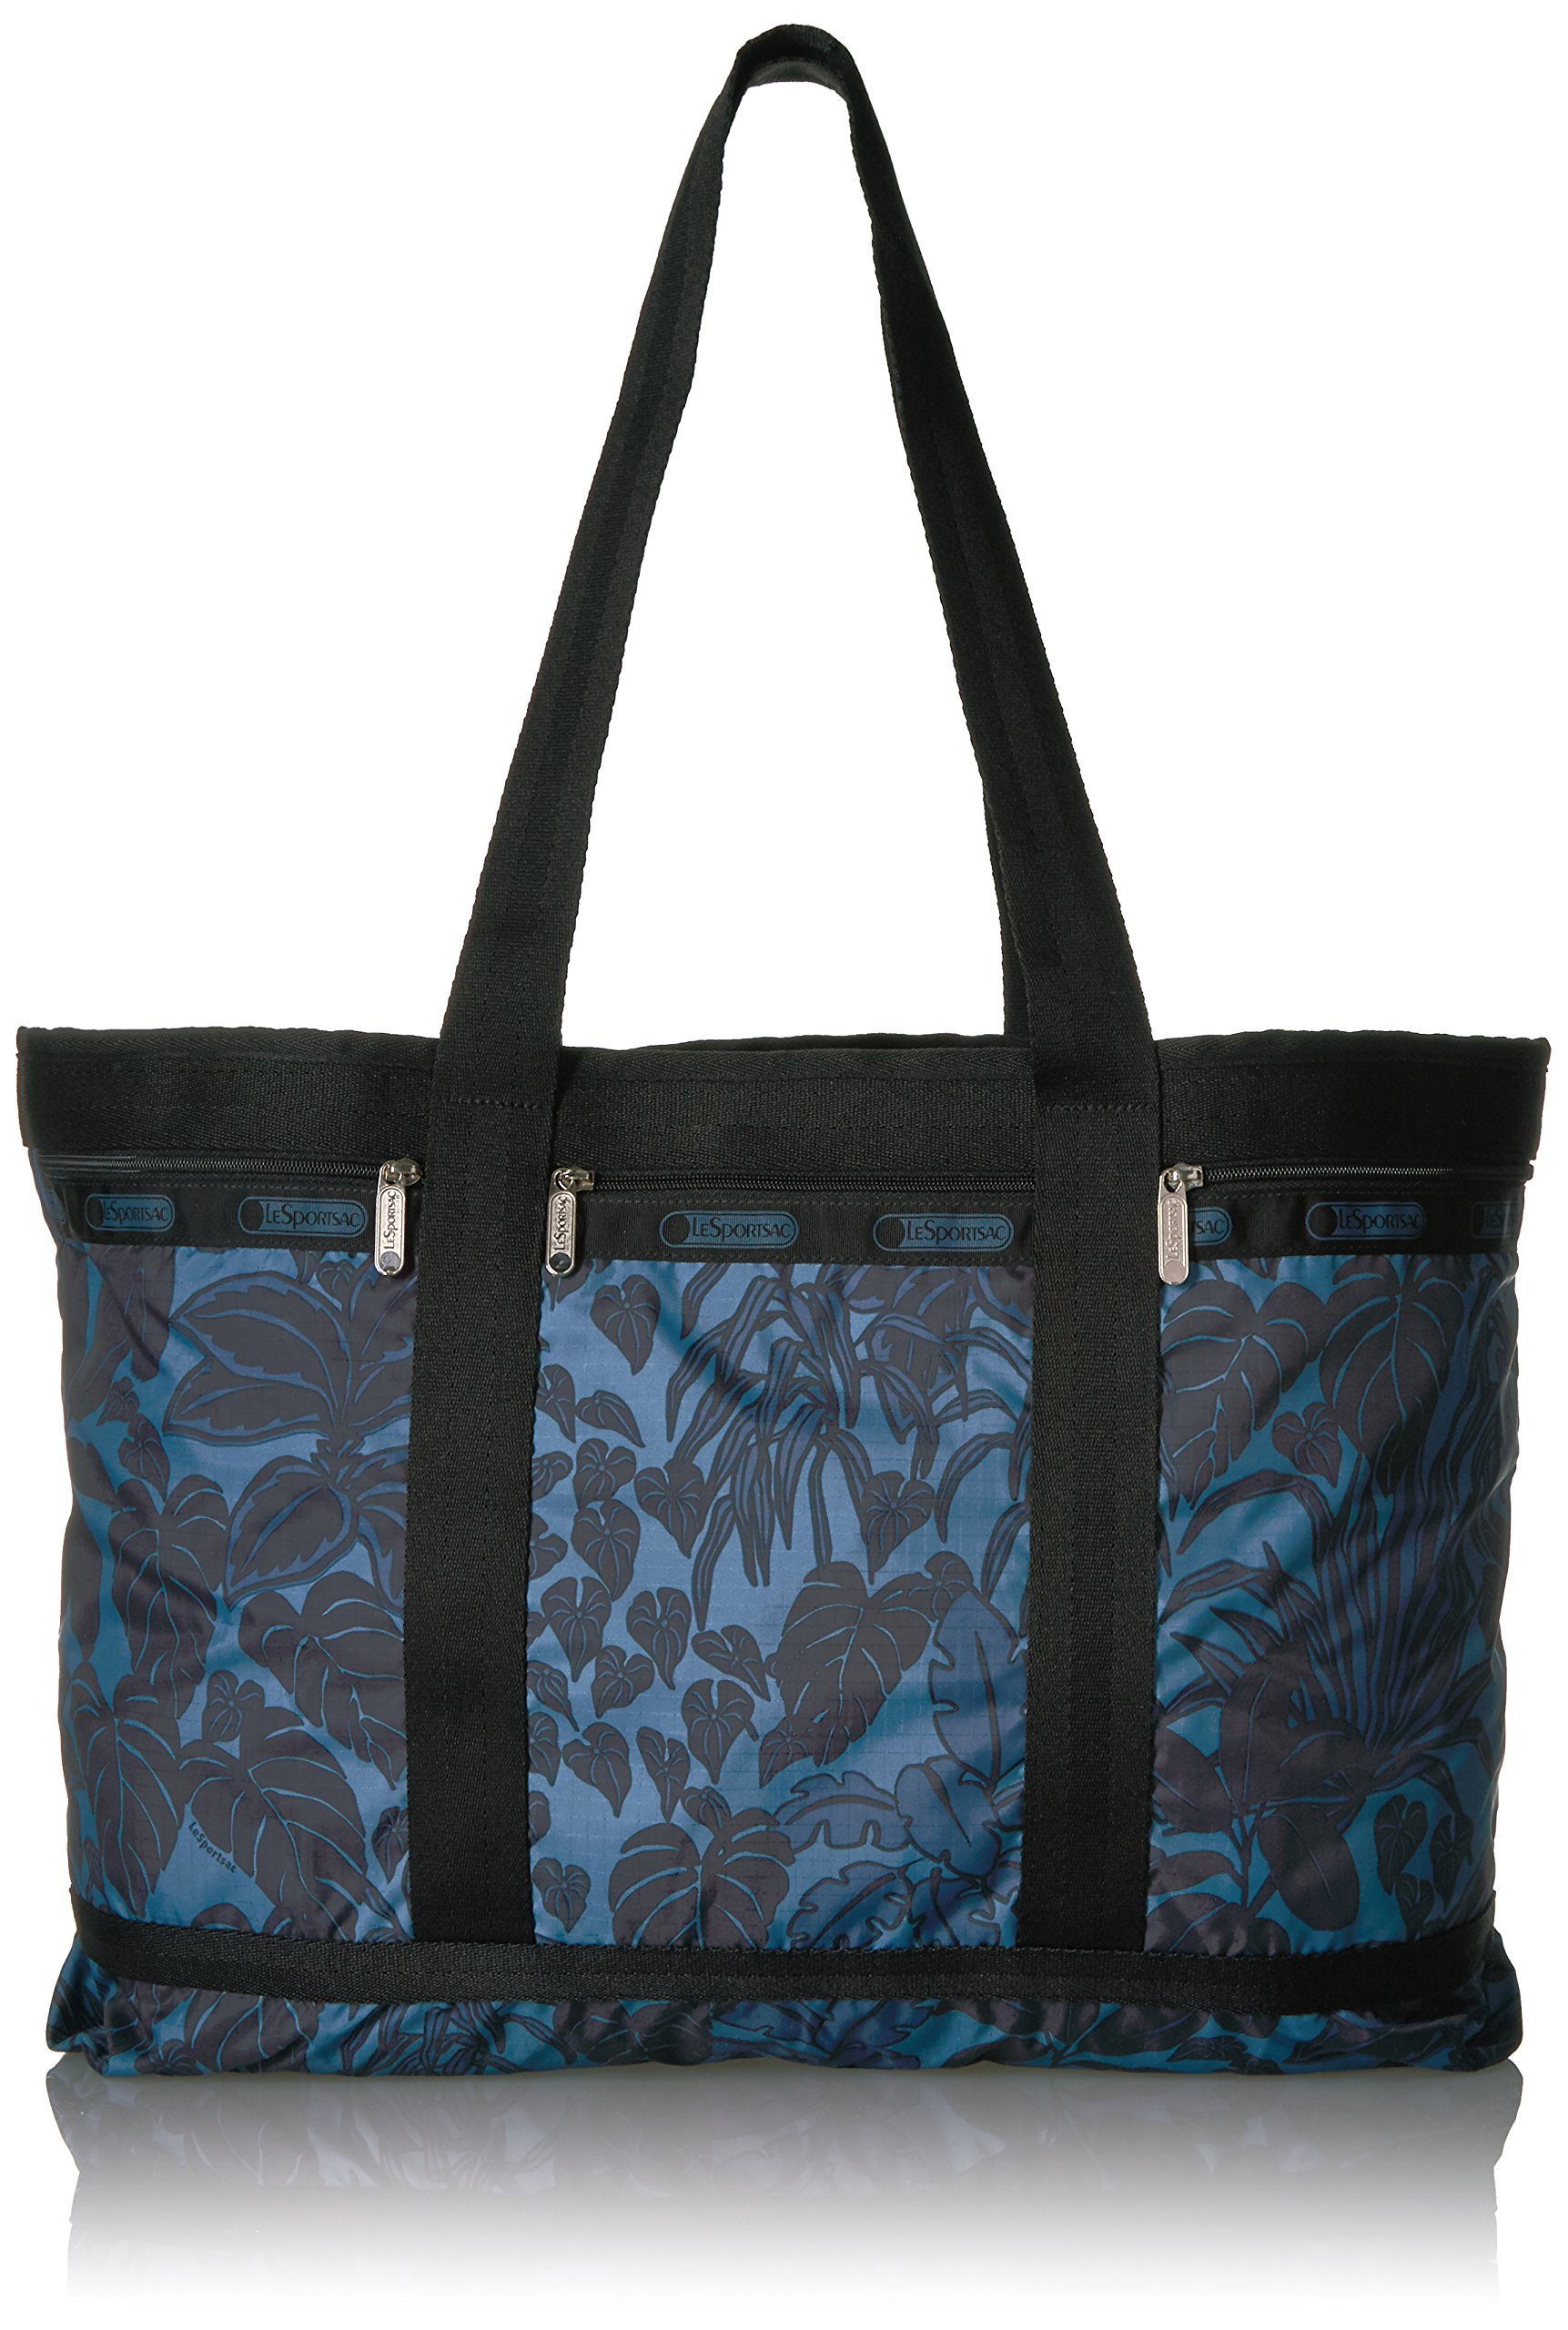 LeSportsac Classic Travel Tote, Midnight Tropical